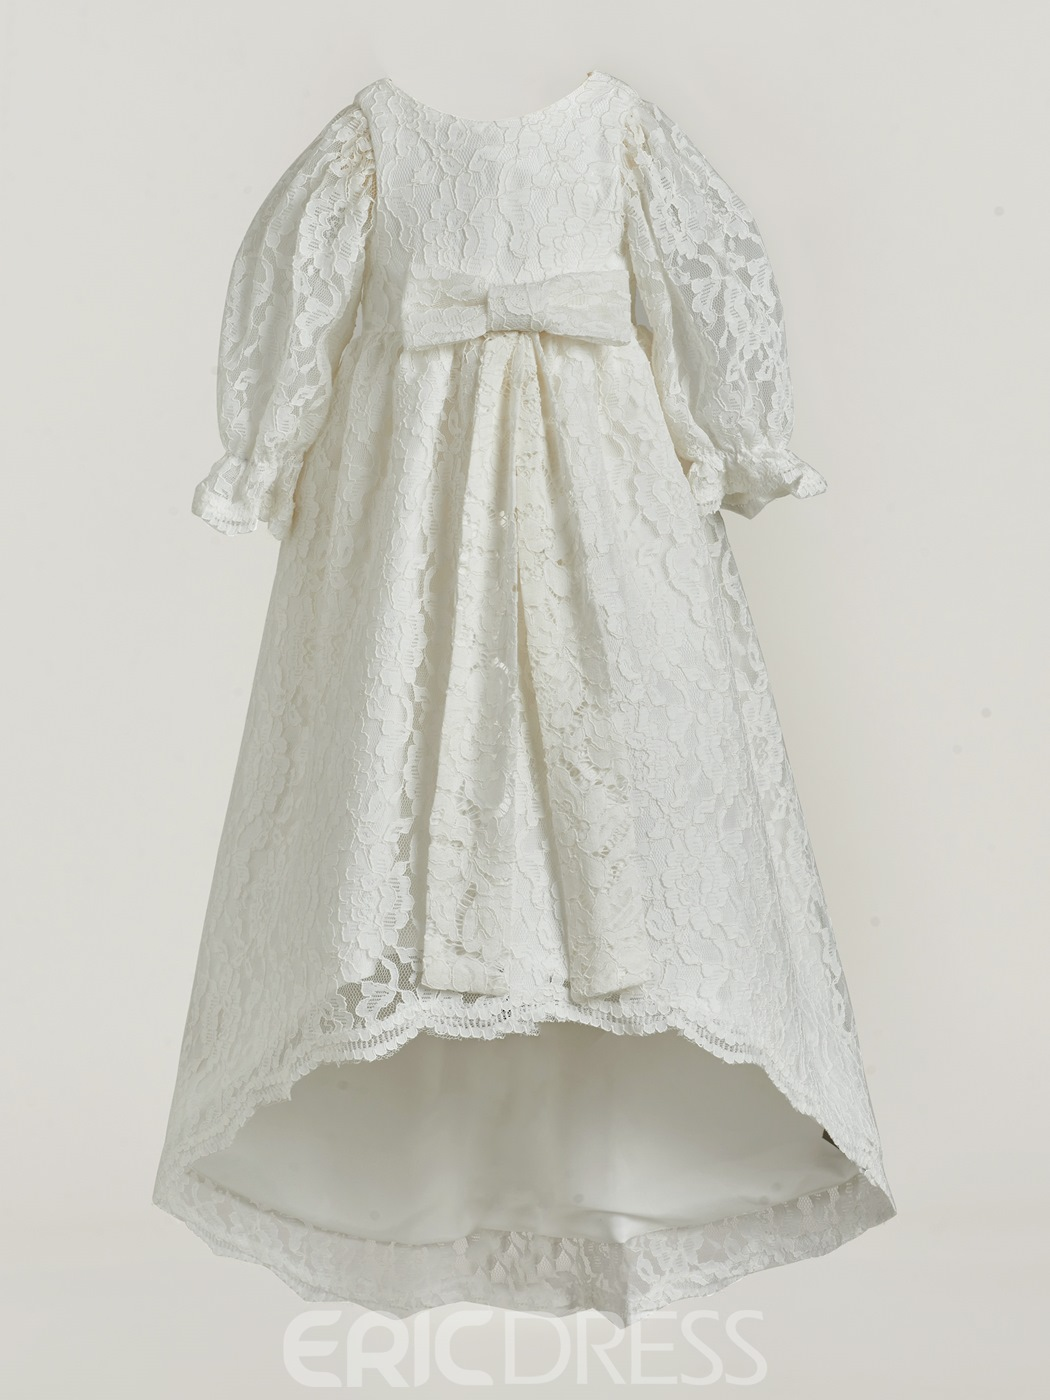 Ericdress High Quality Baby Girl's Lace Christening Gown